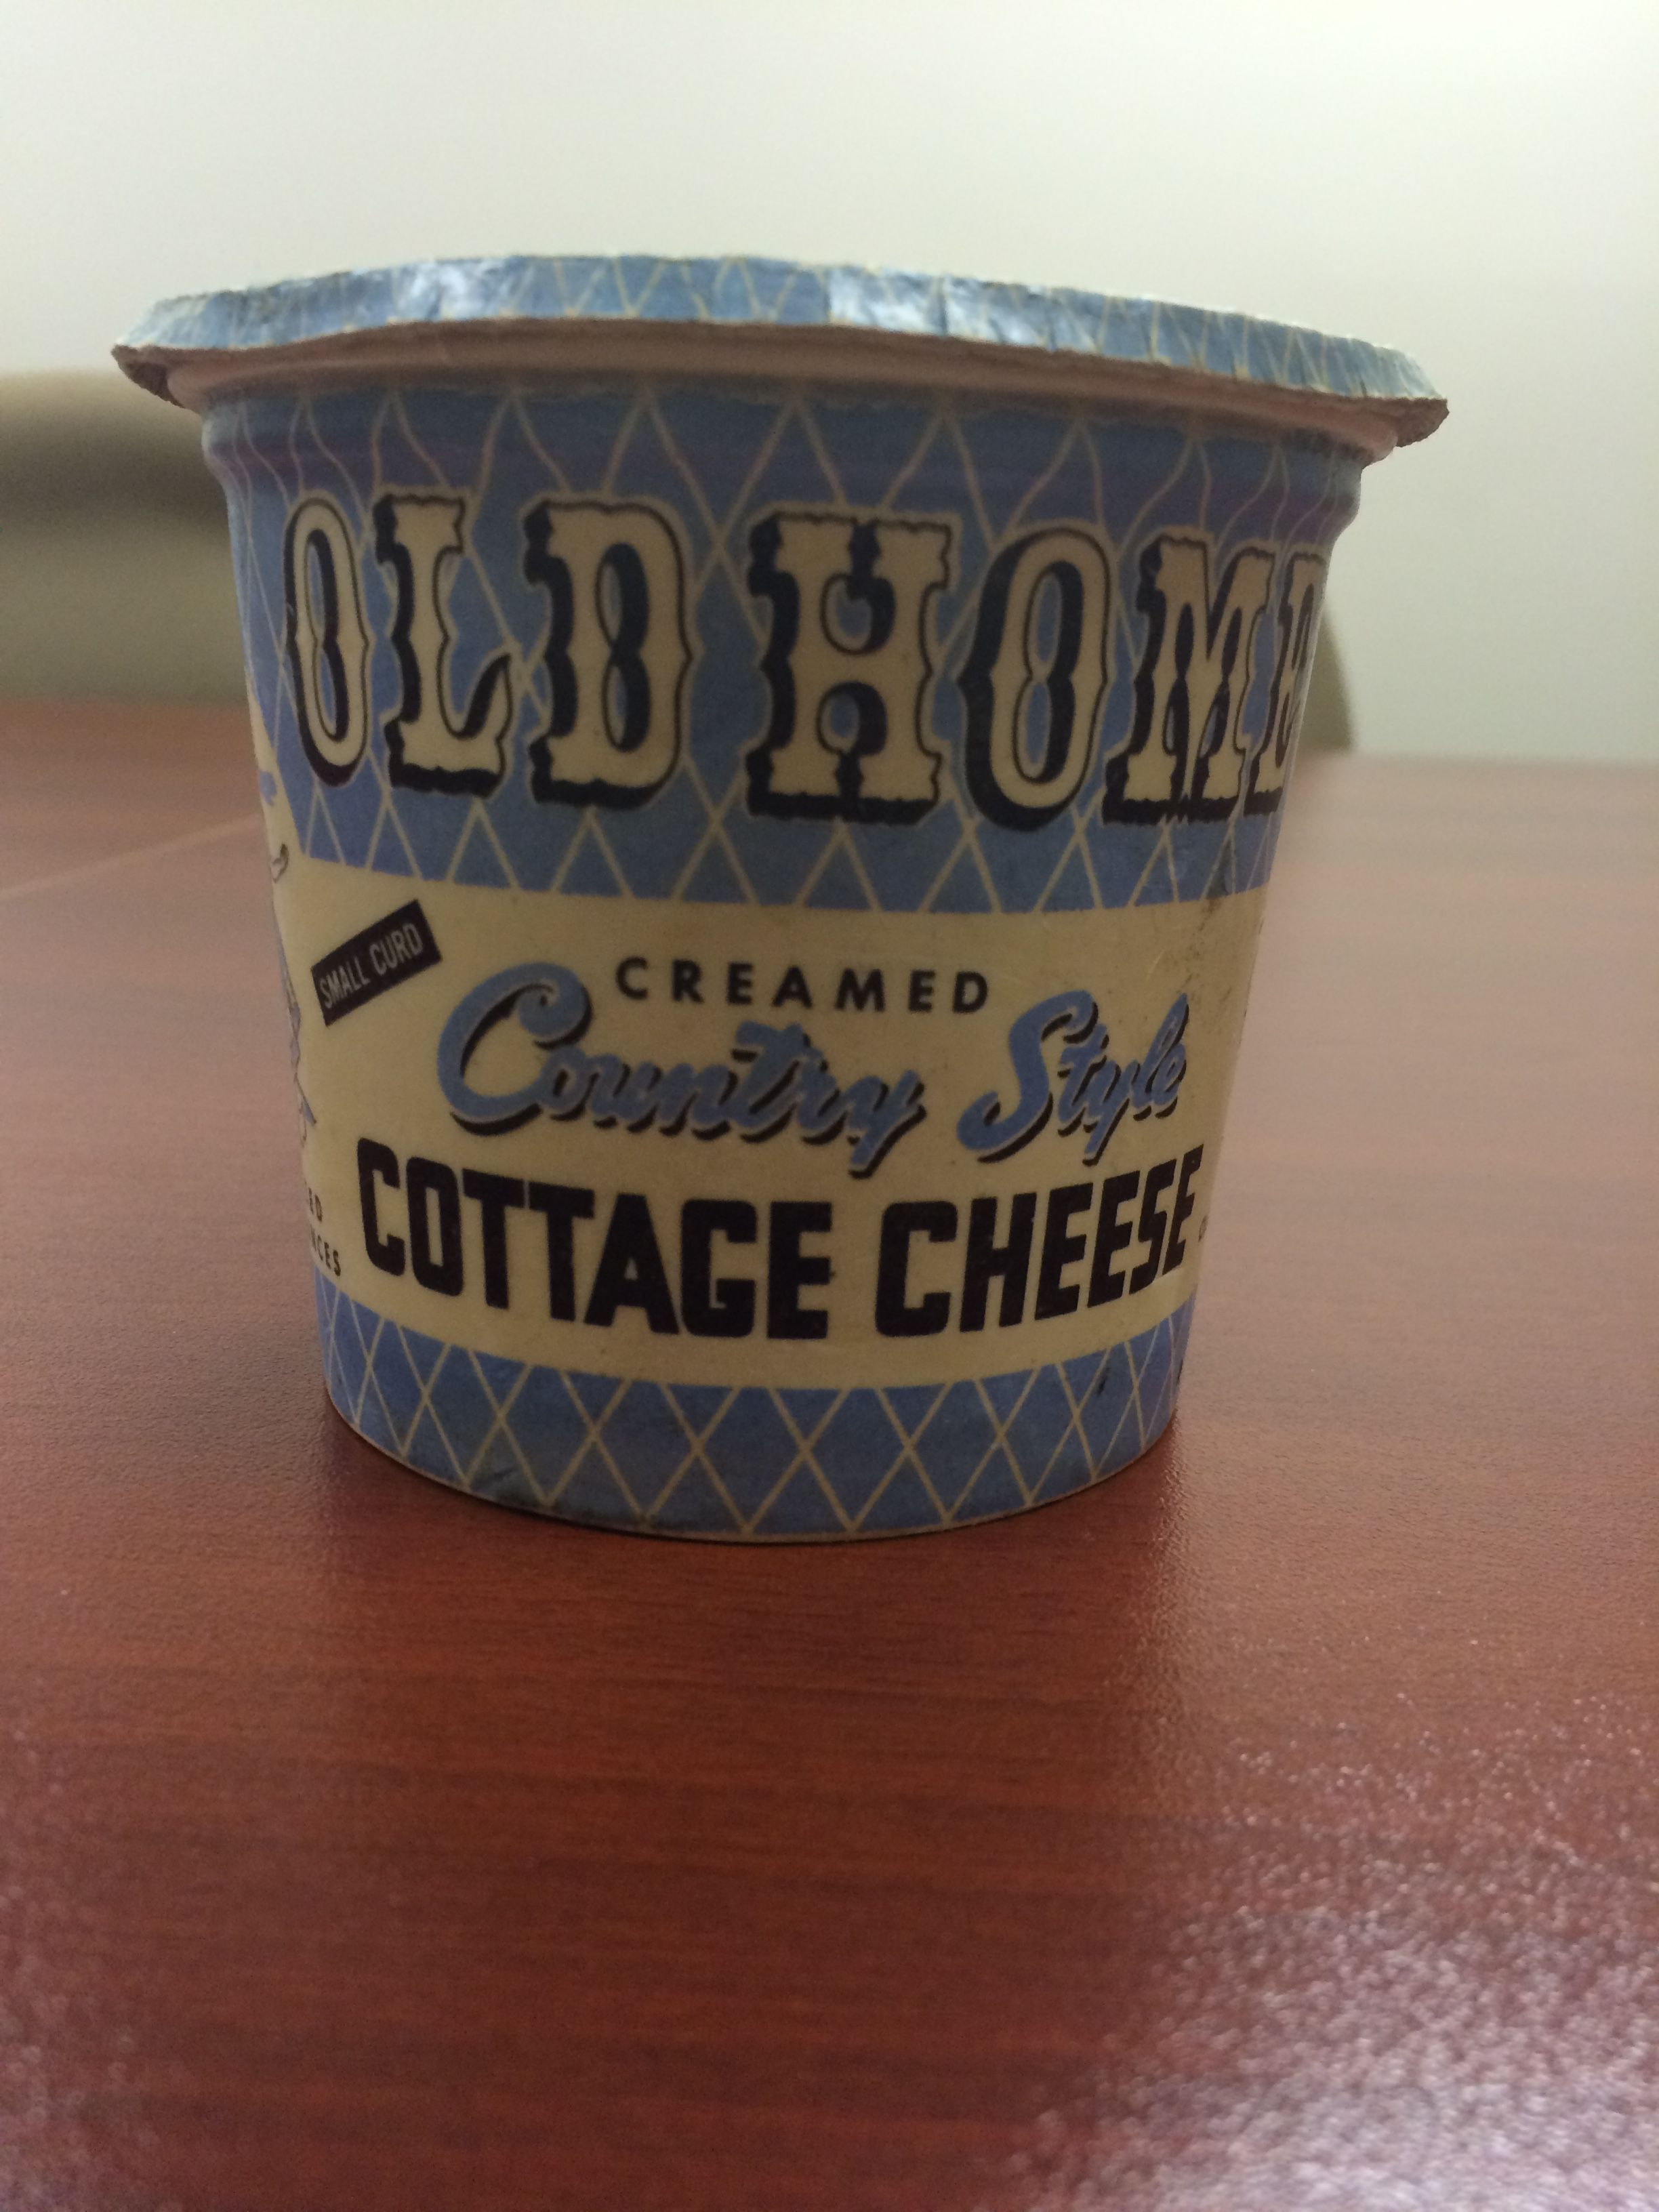 Superb Check Out This Vintage Old Home Cottage Cheese Container Made From Wax.  This One Dates